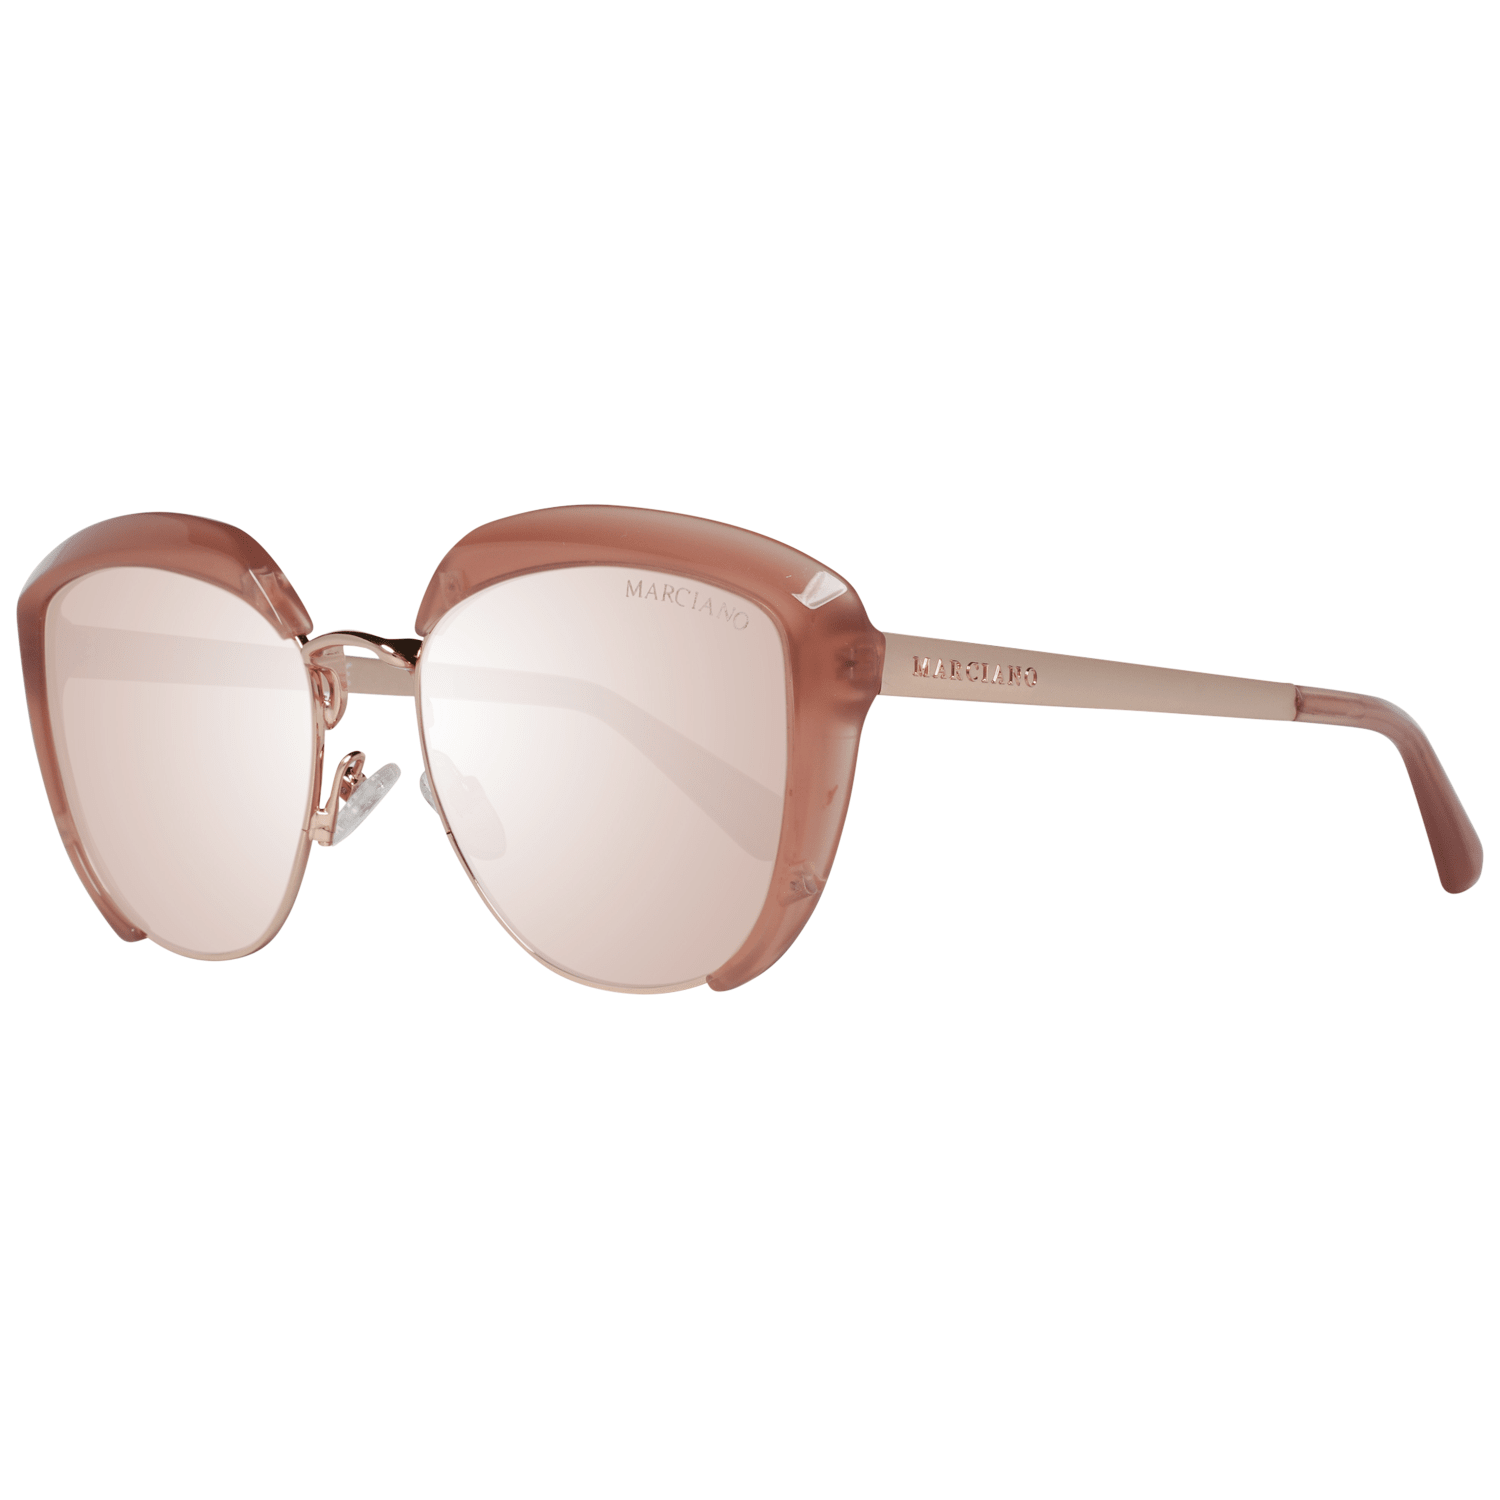 Guess By Marciano Women's Sunglasses Rose Gold GM0791 5472Z